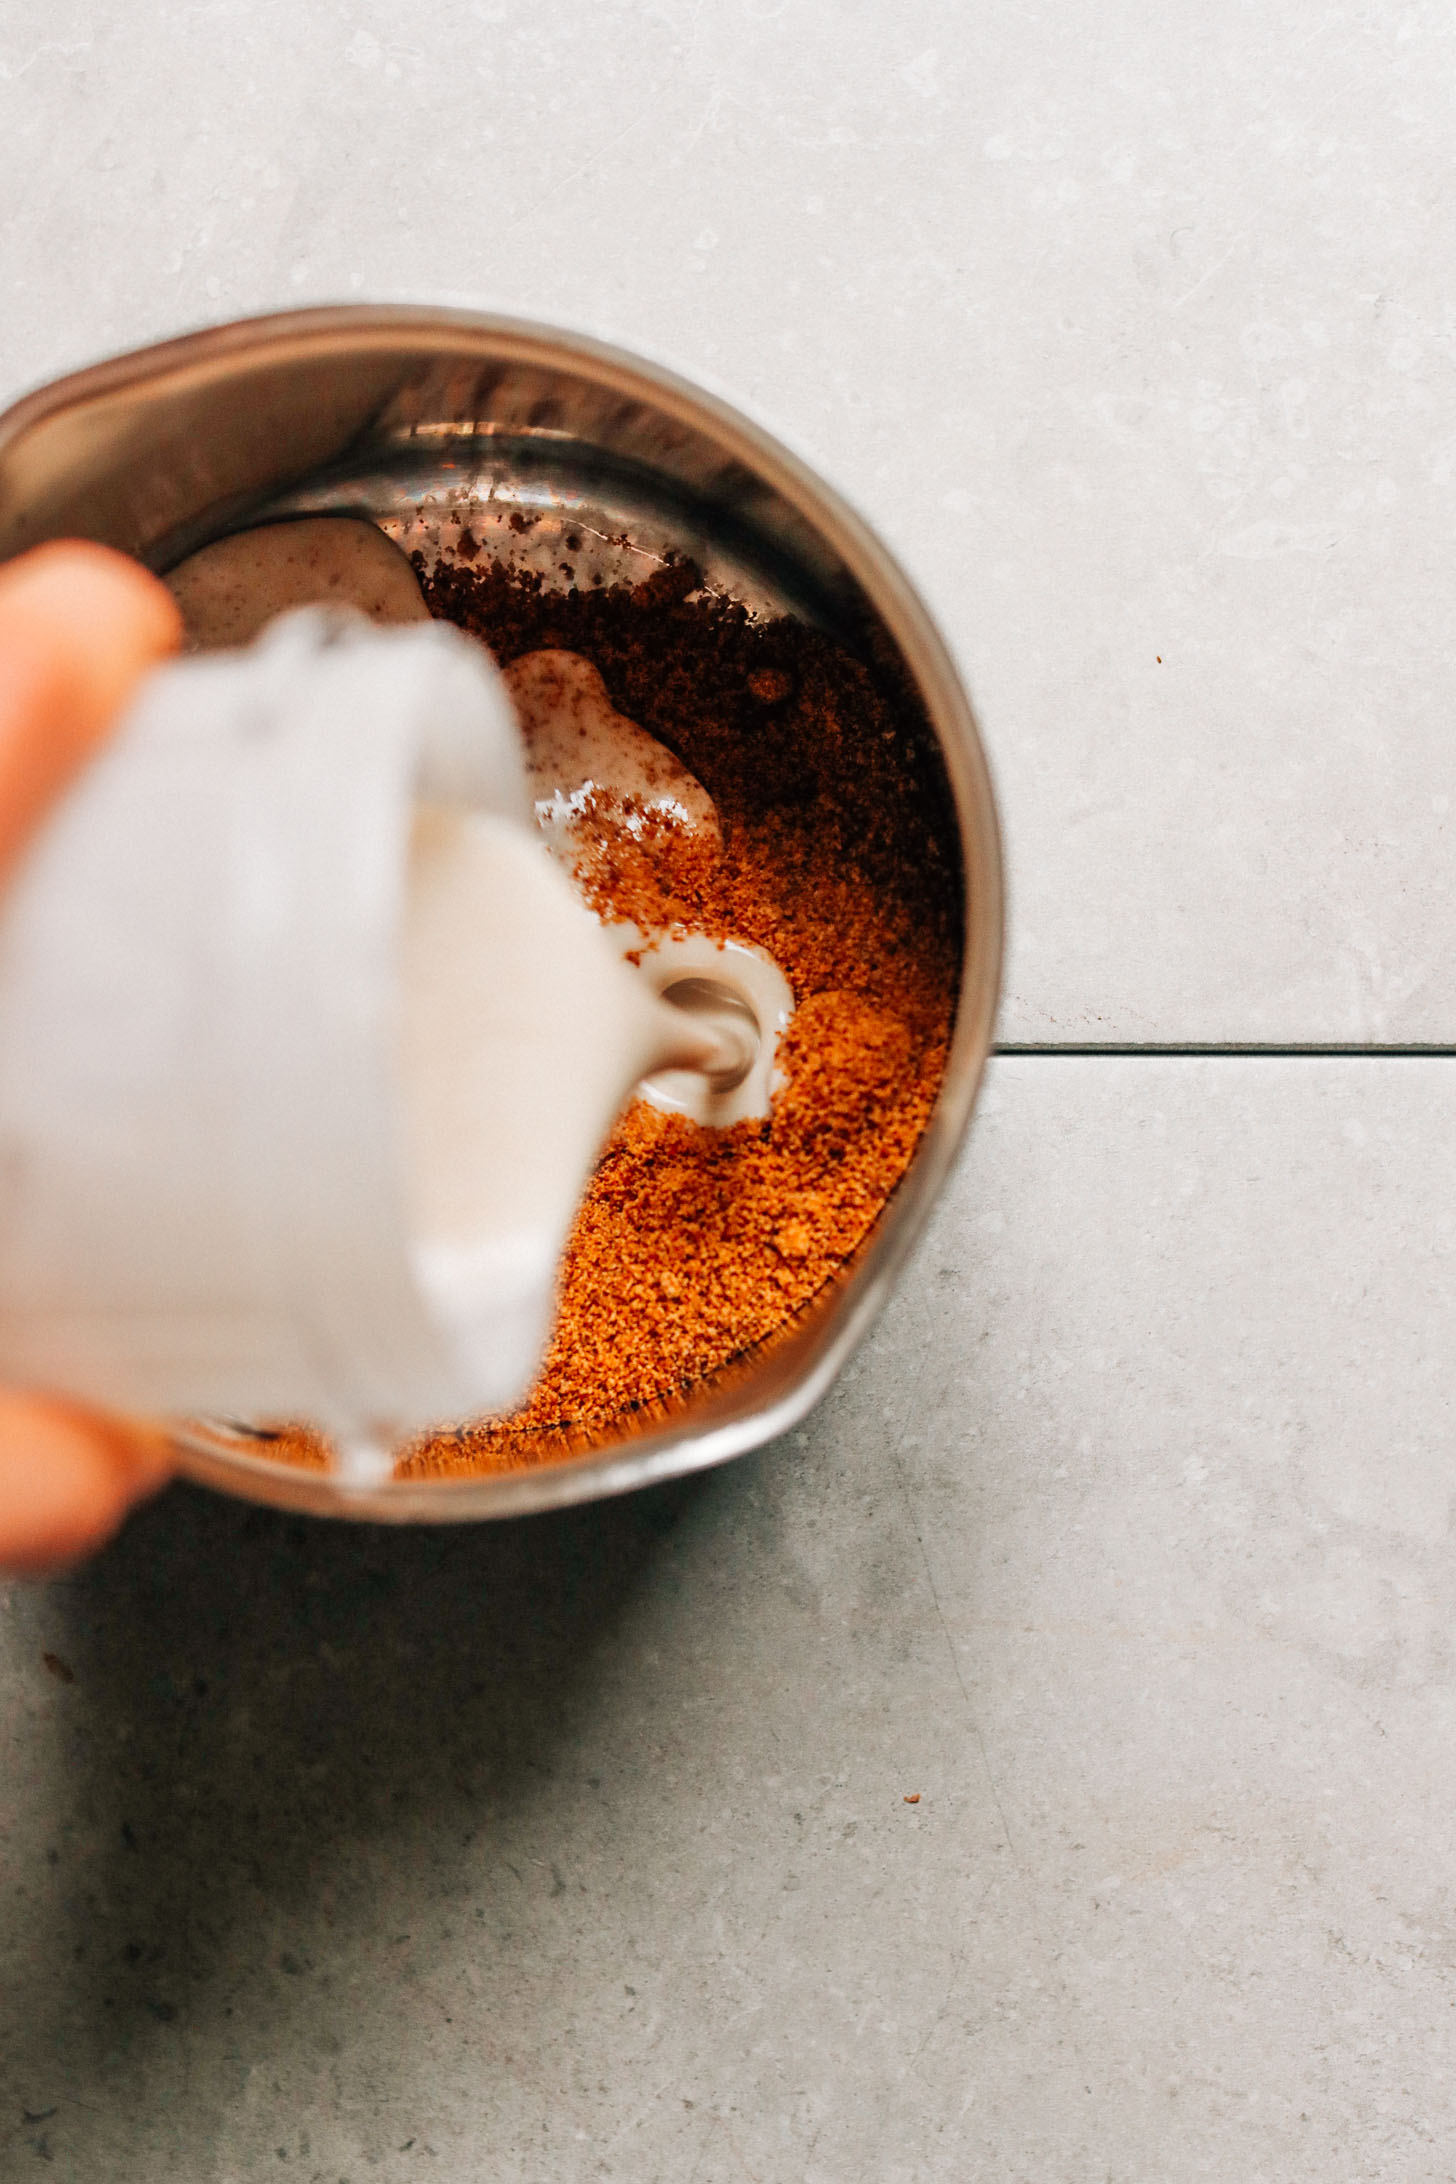 Pouring coconut cream into a saucepan filled with ingredients for making plant-based Caramel Sauce